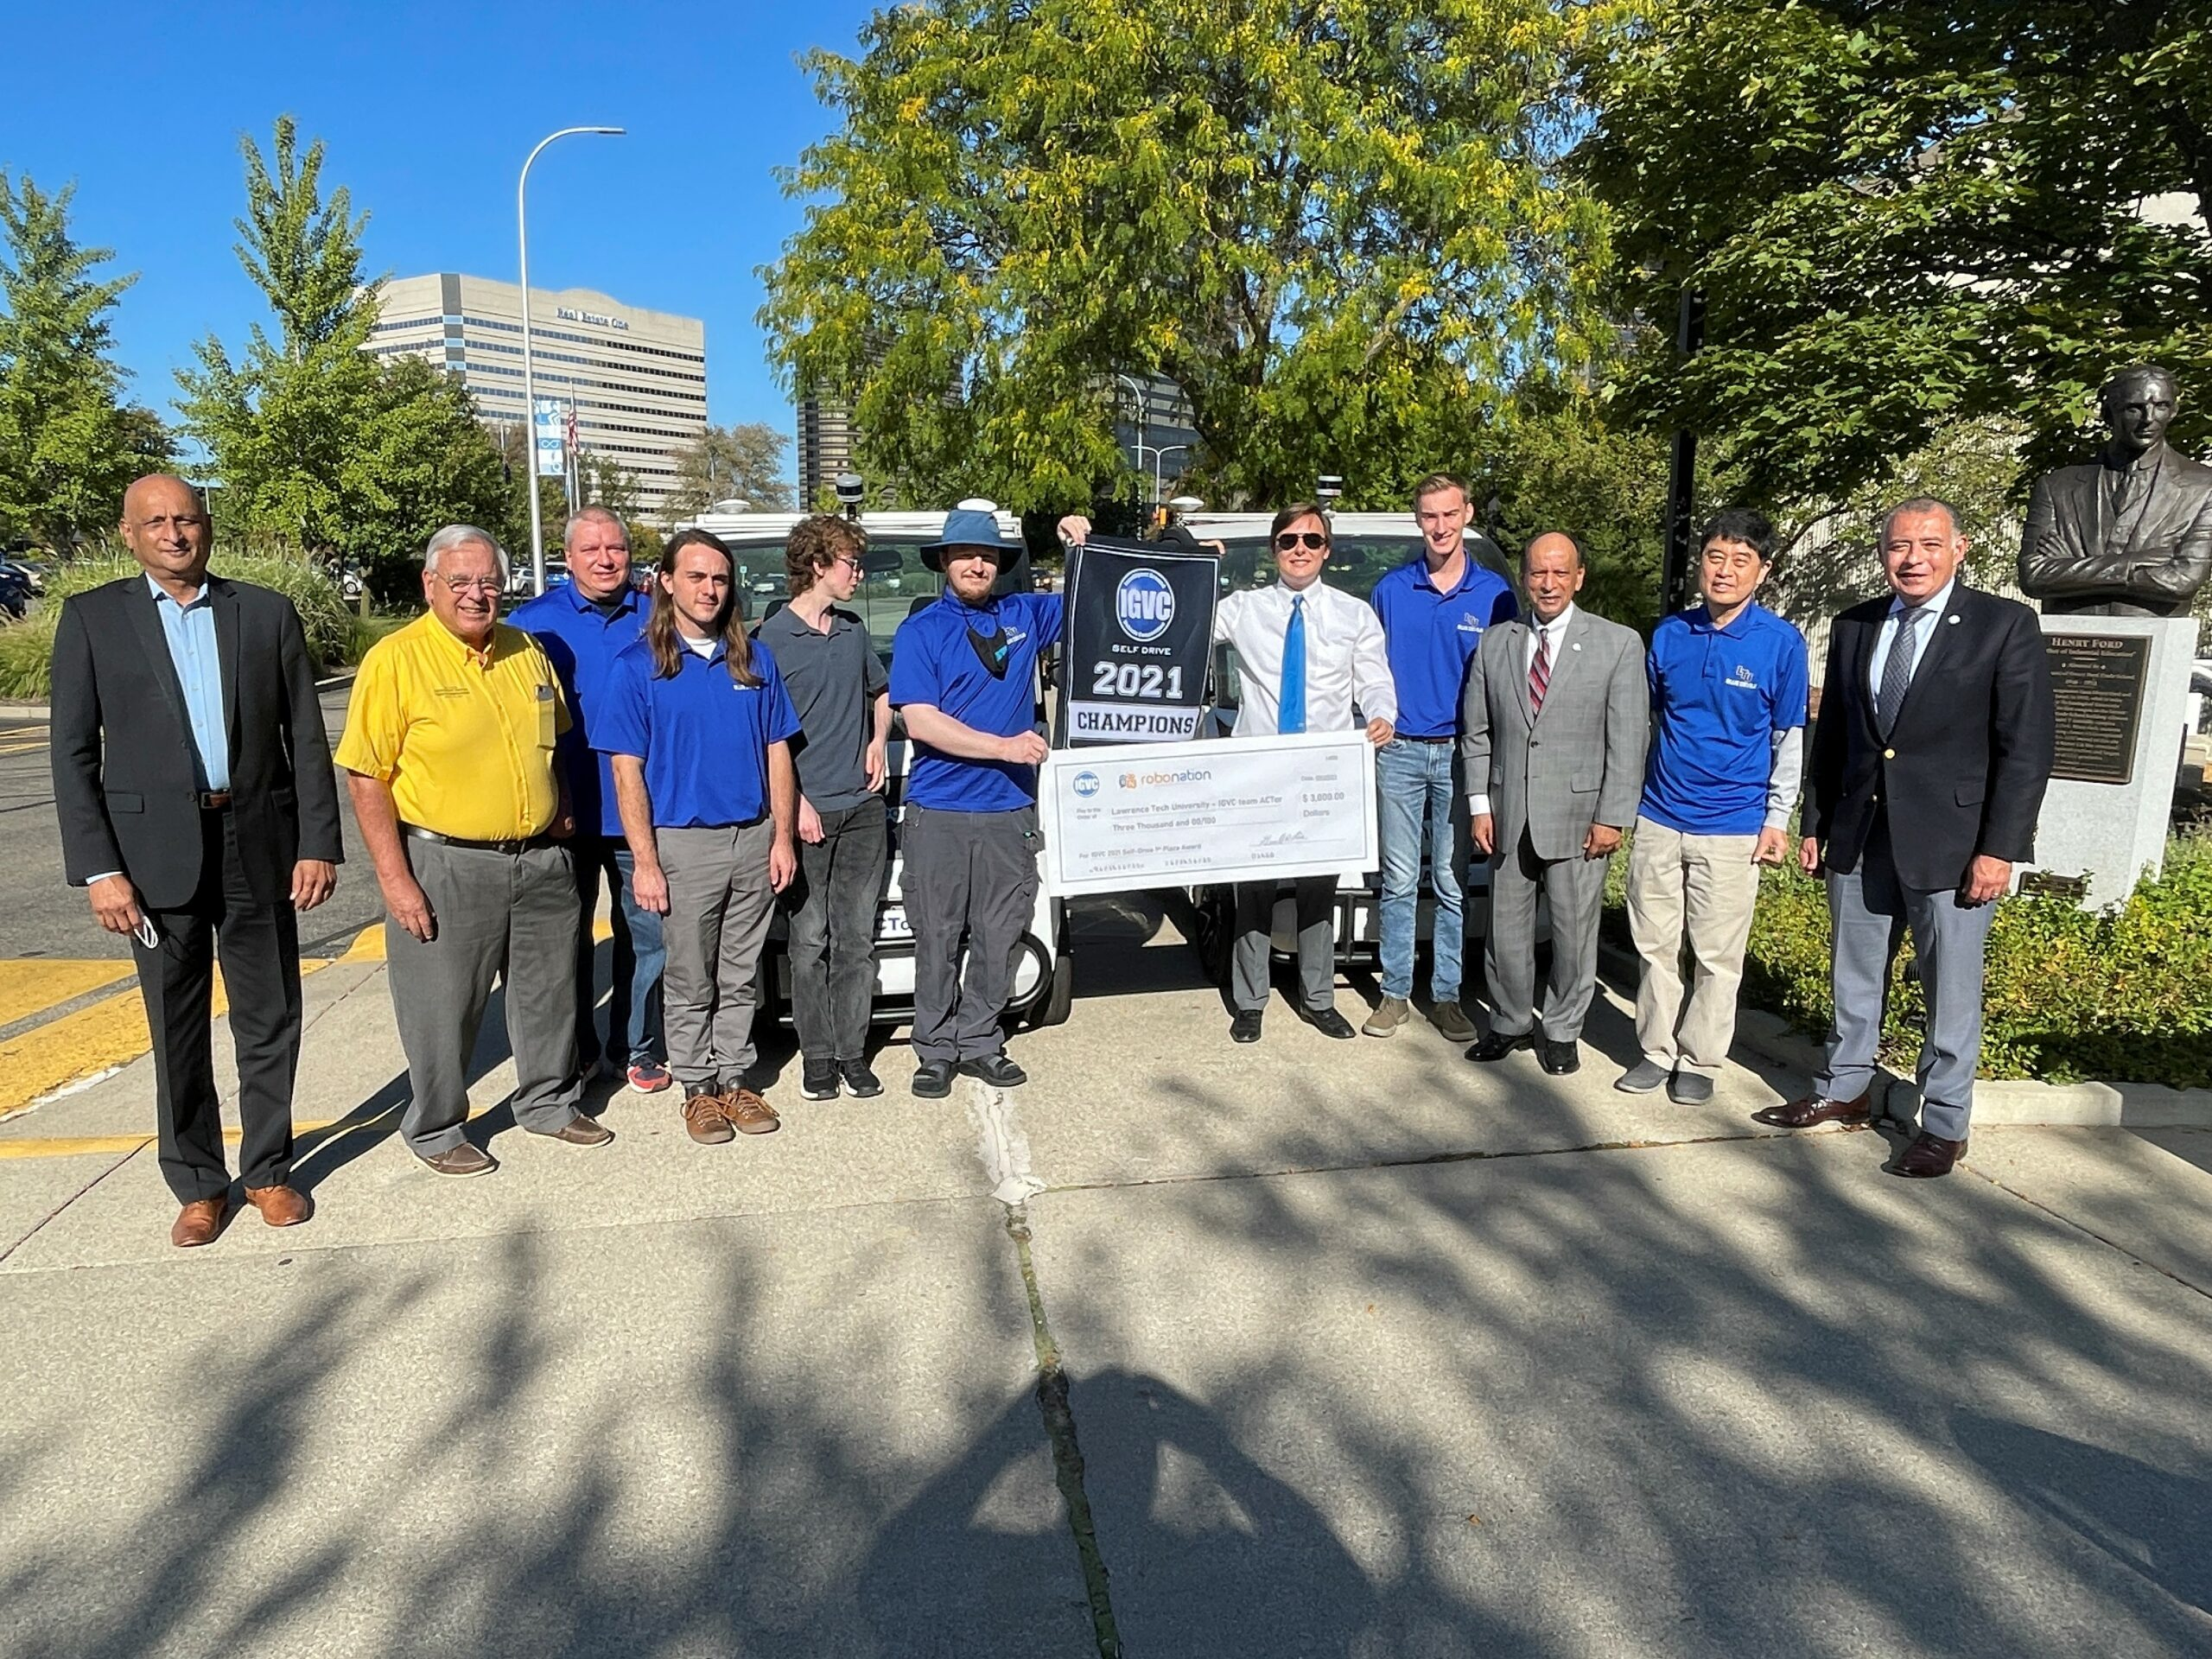 Lawrence Tech IGVC team receives the RoboNation 2021 Self-Drive champions banner, $3,000 award